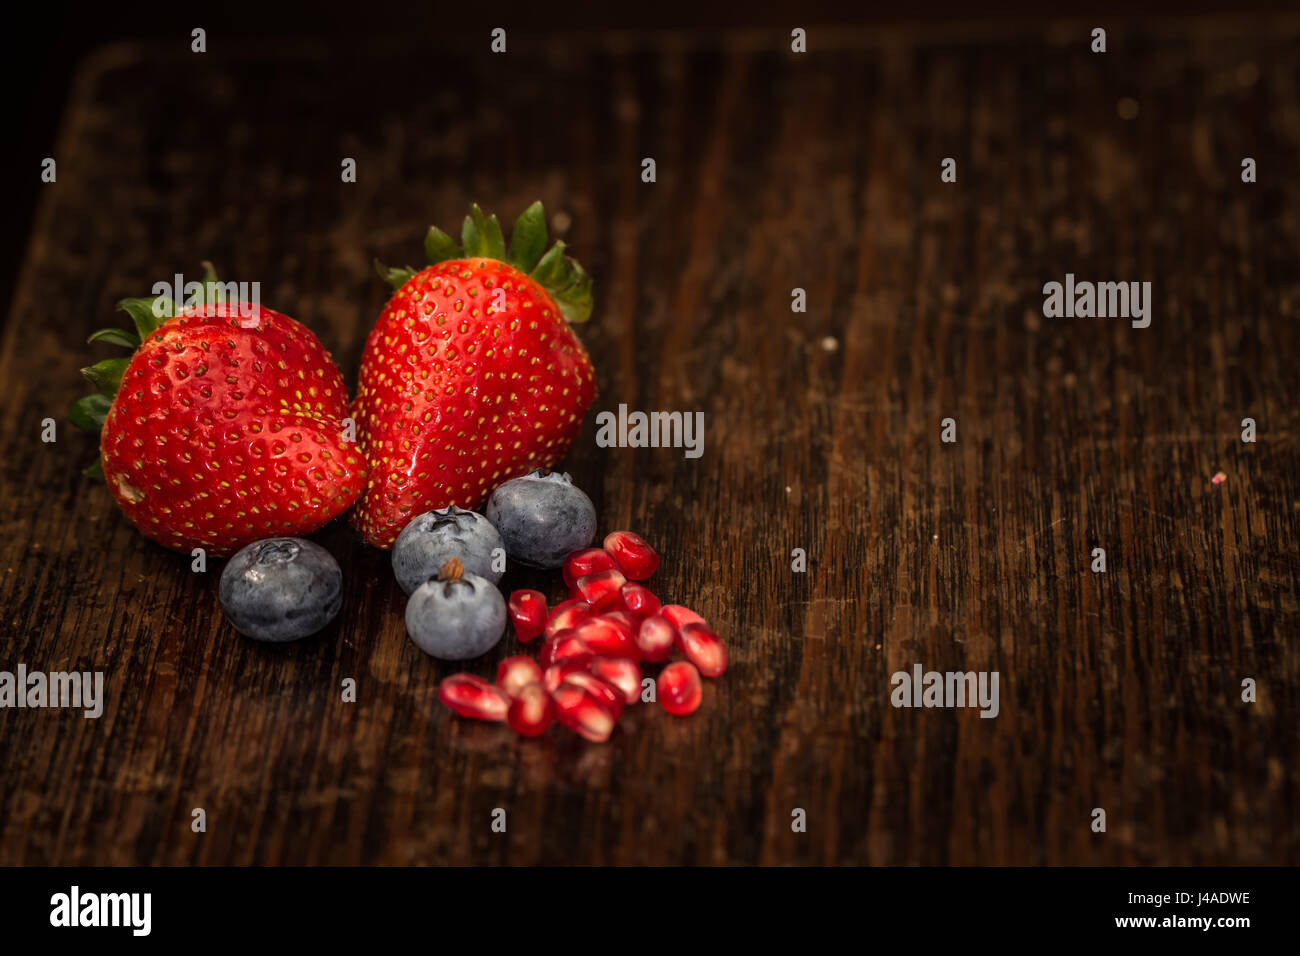 freshly farm picked strawberries blue berries closeup with pomegranate seeds with copy space Stock Photo